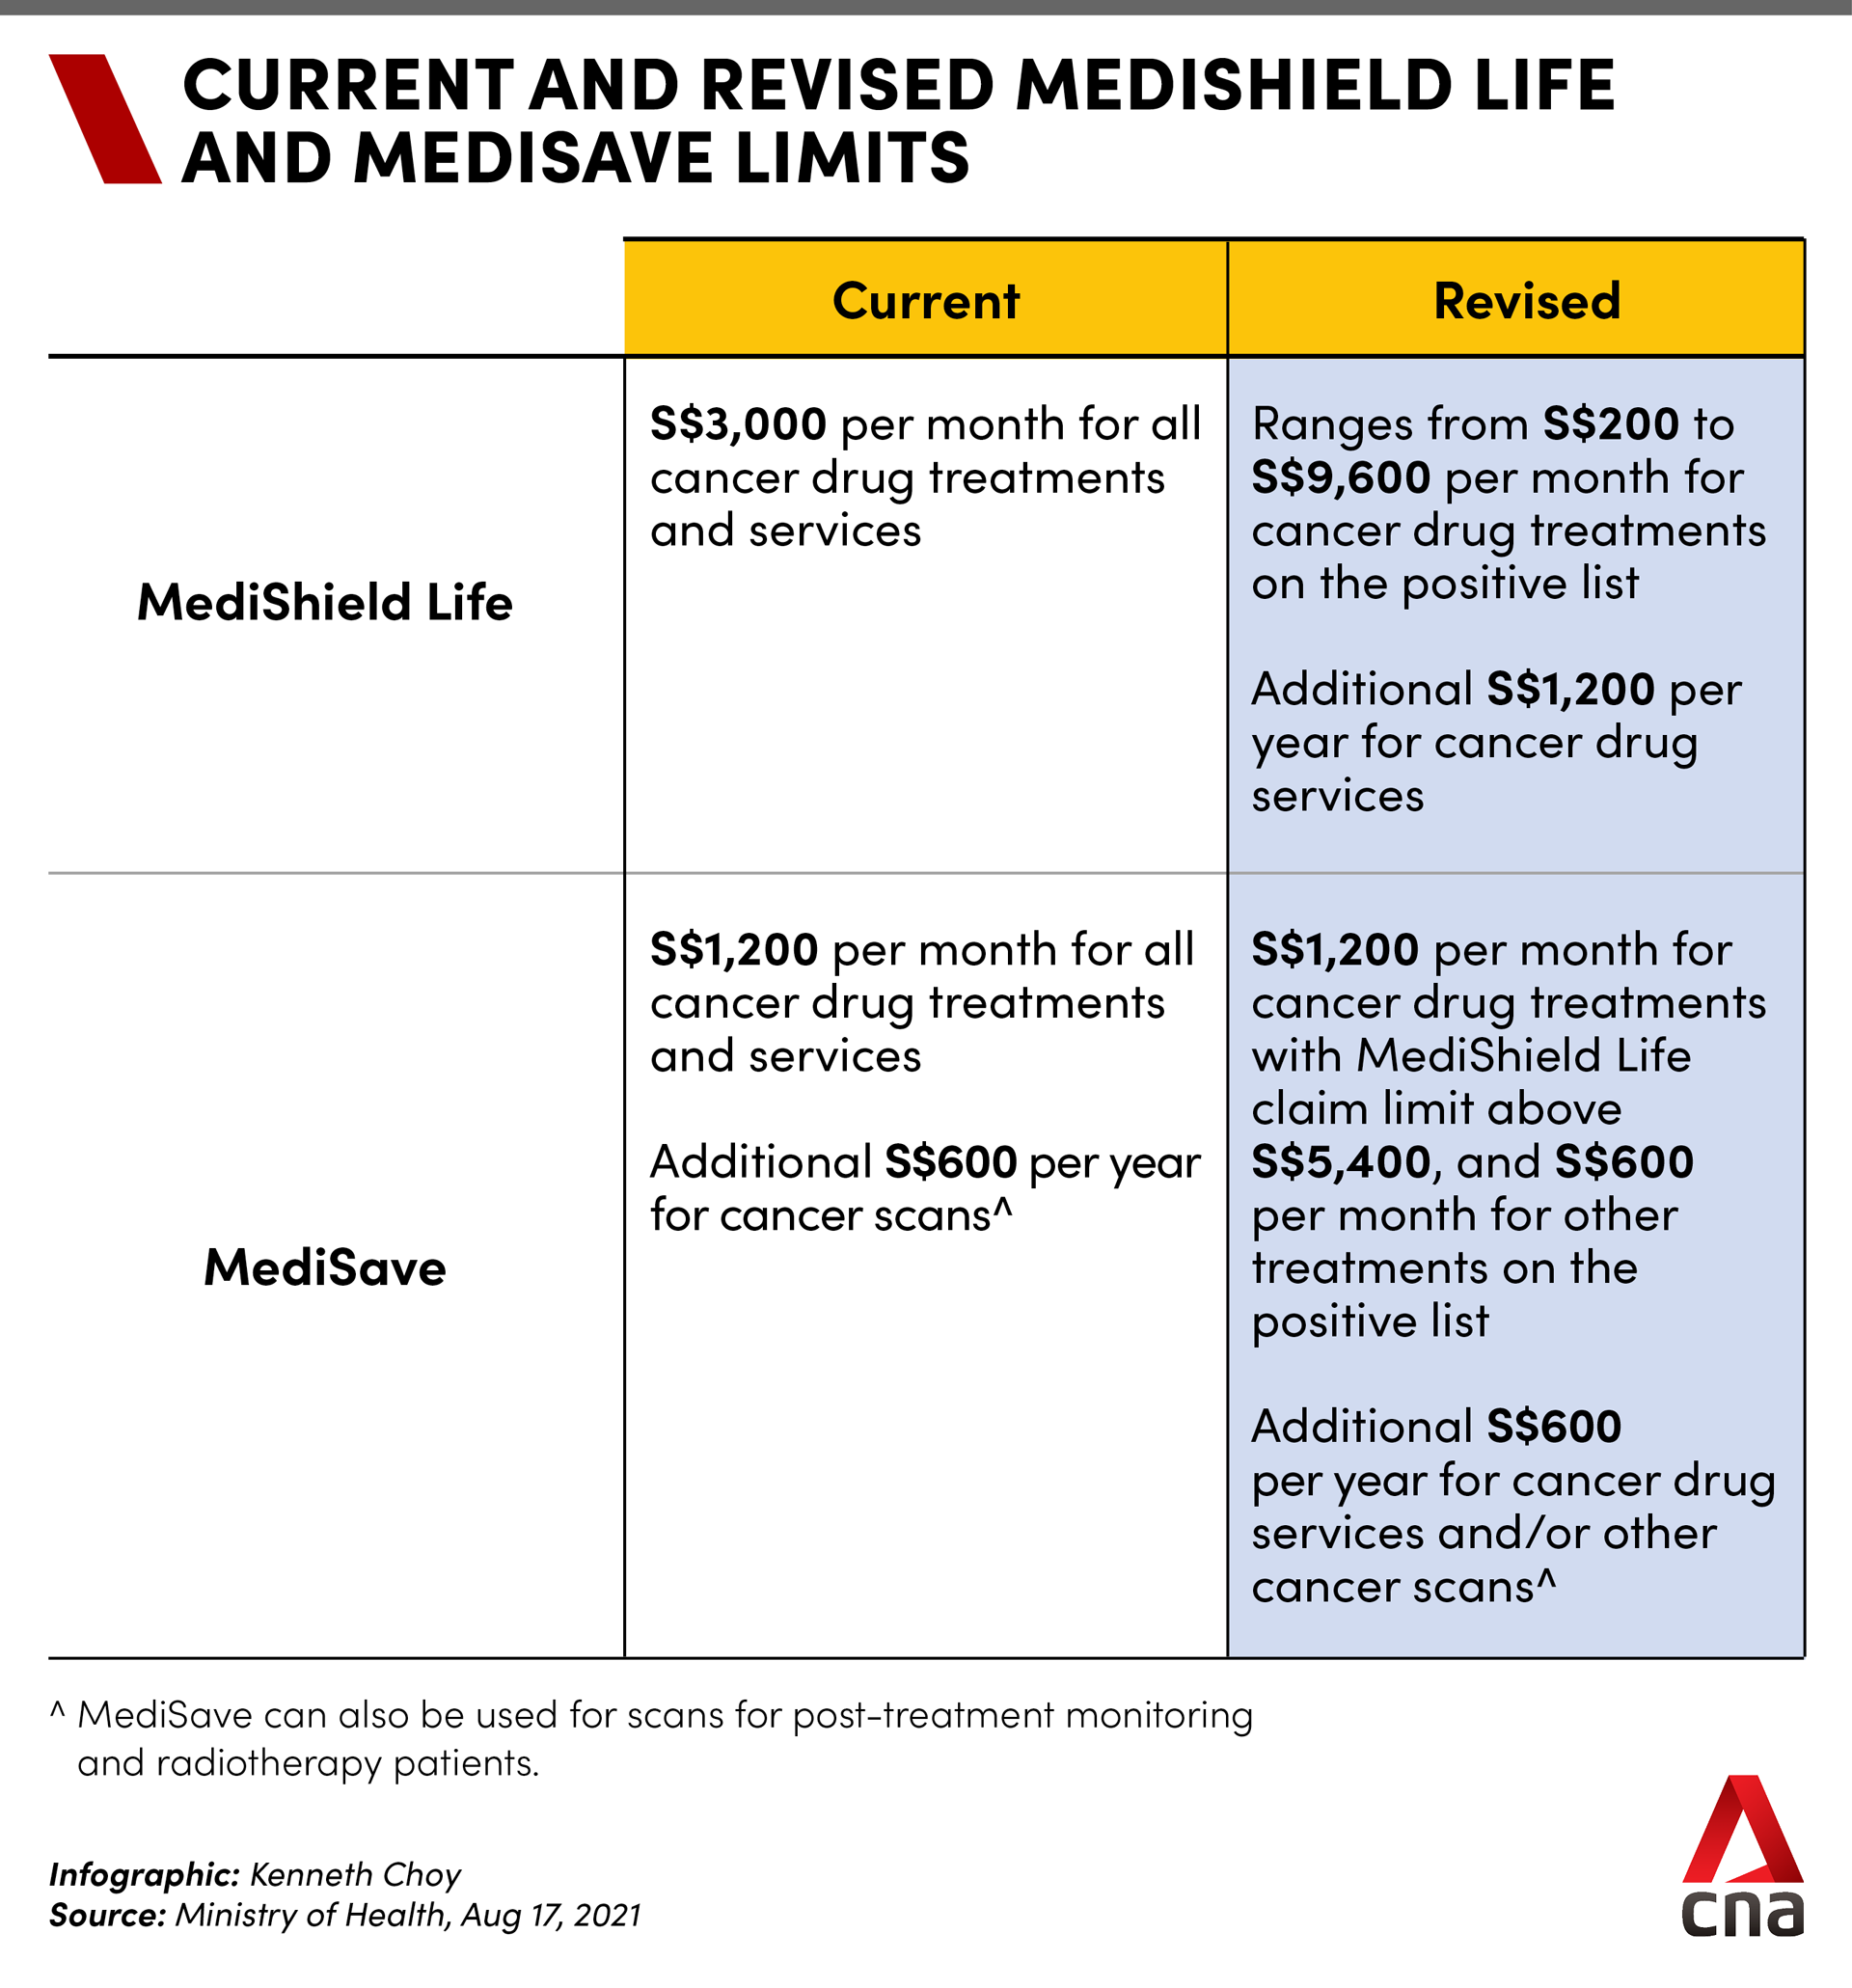 Current and revised MediShield Life and MediSave limits